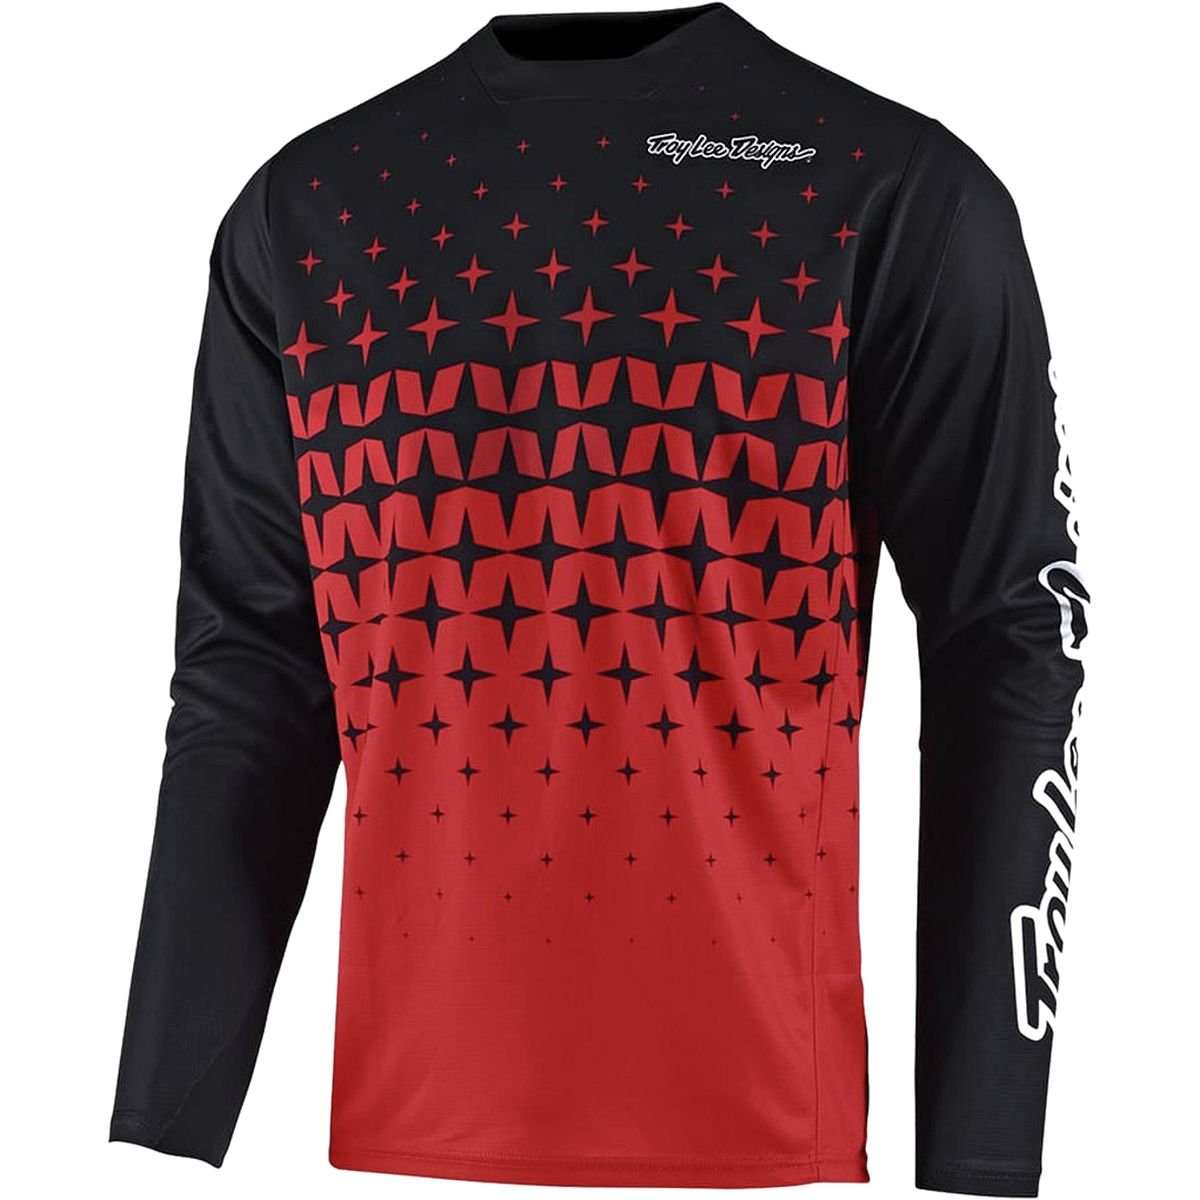 Troy Lee Designs Sprint Long-Sleeve Jersey - Men's Megaburst Red/Black, XXL by Troy Lee Designs